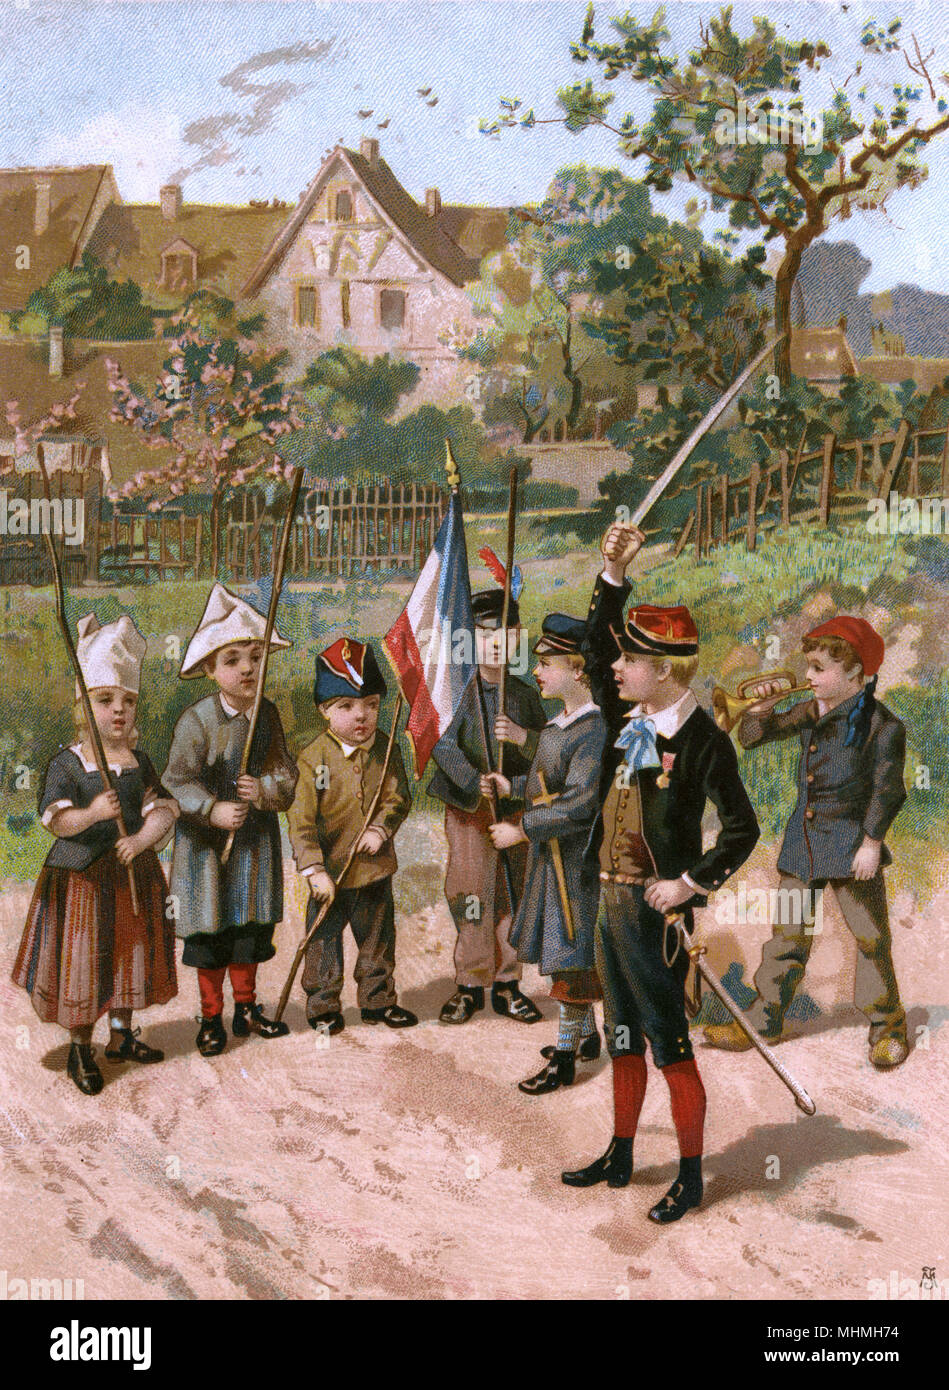 A budding Bonaparte invites his troops to salute the tricouleur, waving his sword while a bugler blows      Date: circa 1880 - Stock Image